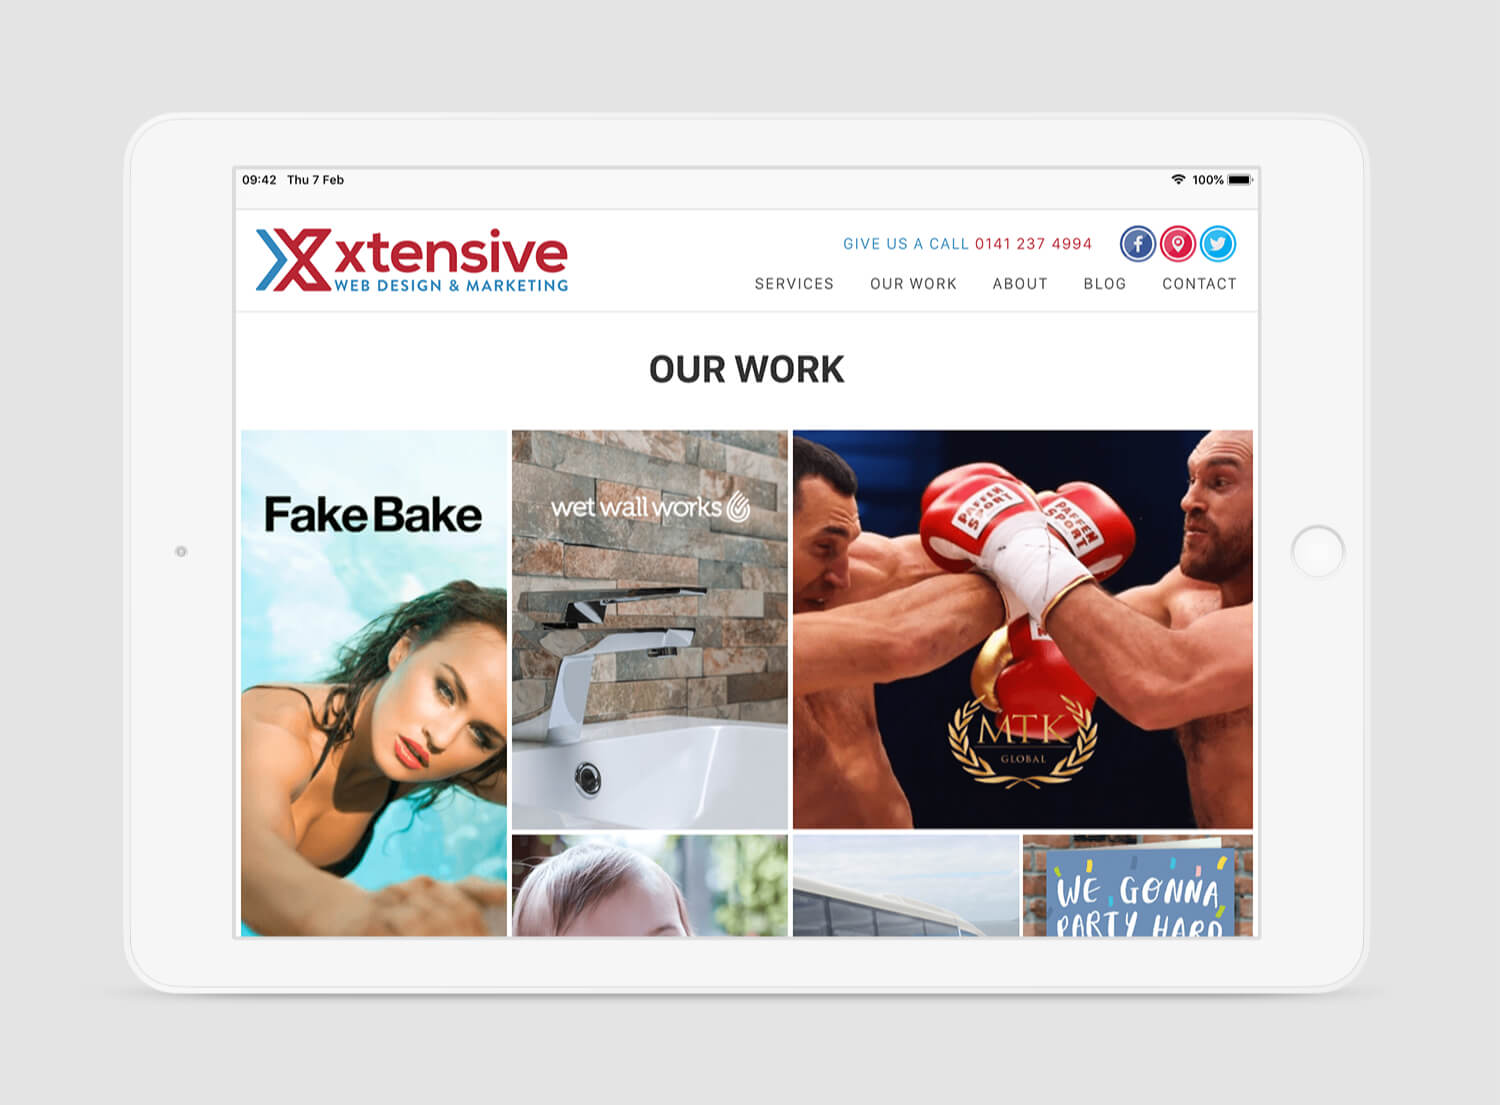 image of the new Xtensive website on an iPad